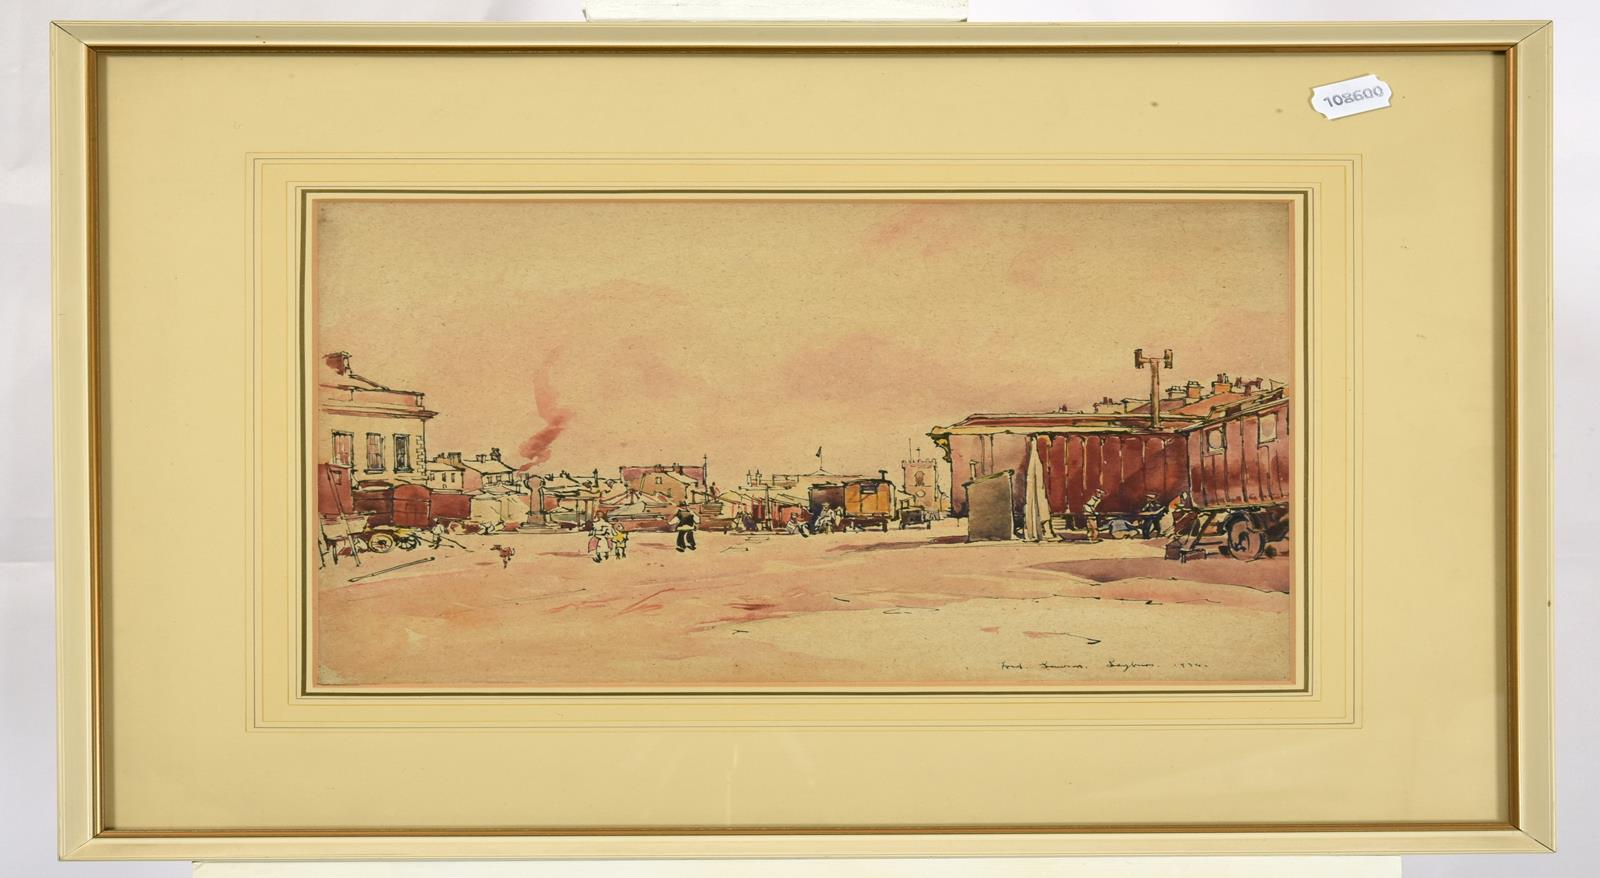 Frederick (Fred) Lawson (1888-1968) ''Leyburn'' Market Place Signed, inscribed and dated 1934, ink - Image 2 of 2